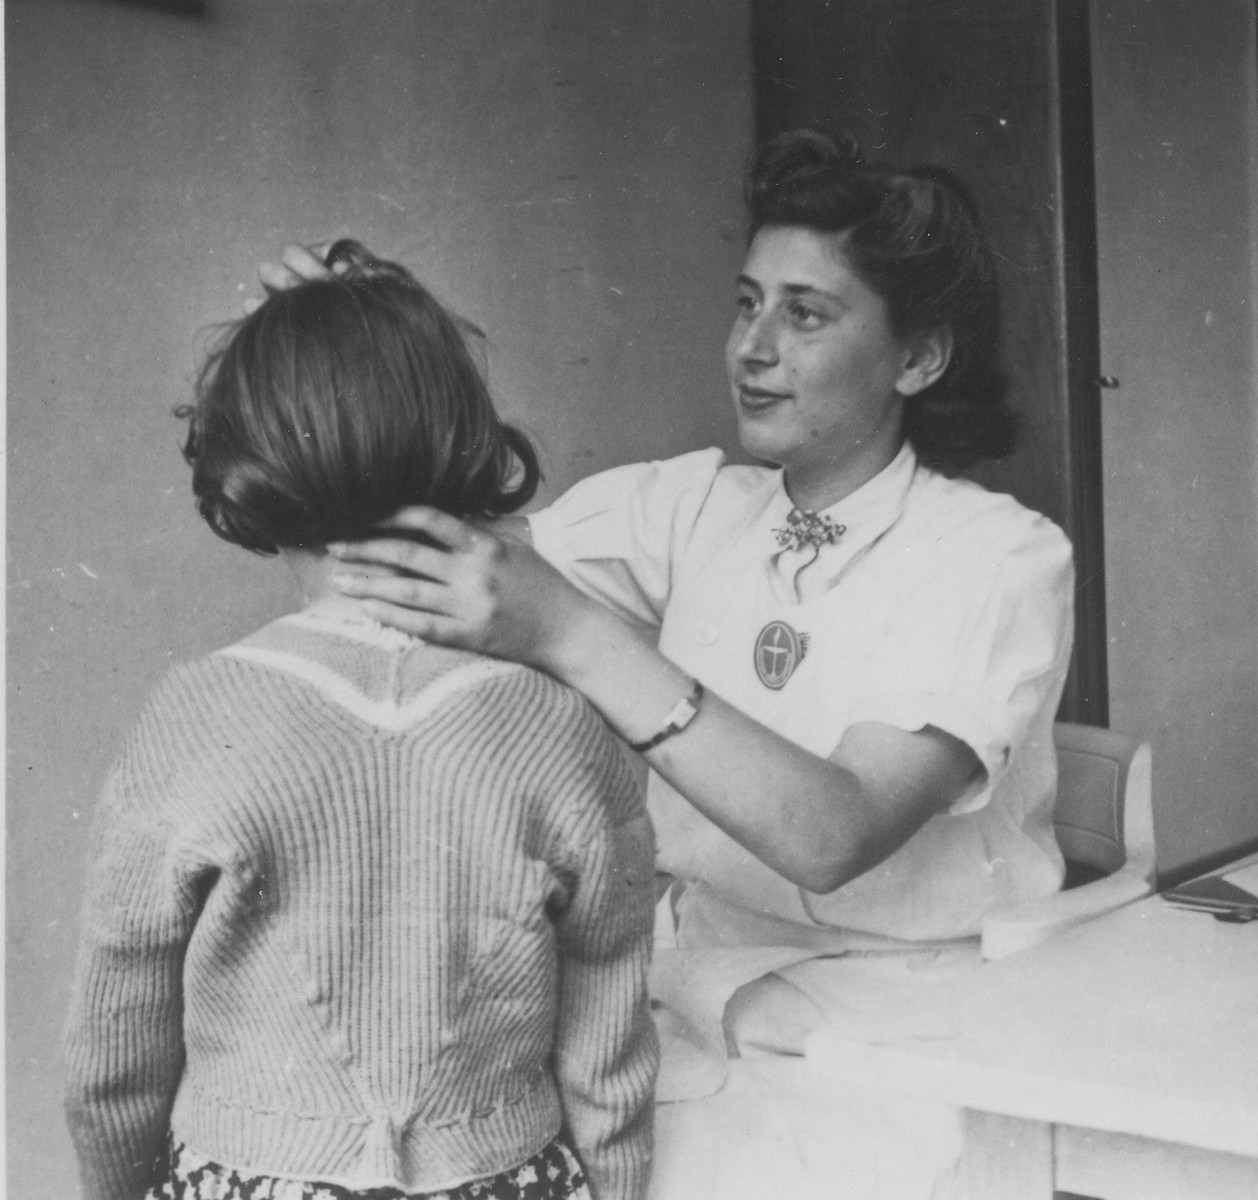 OSE relief worker Margot Stein gives a medical examination to a child at the Hotel Bompard internment camp.